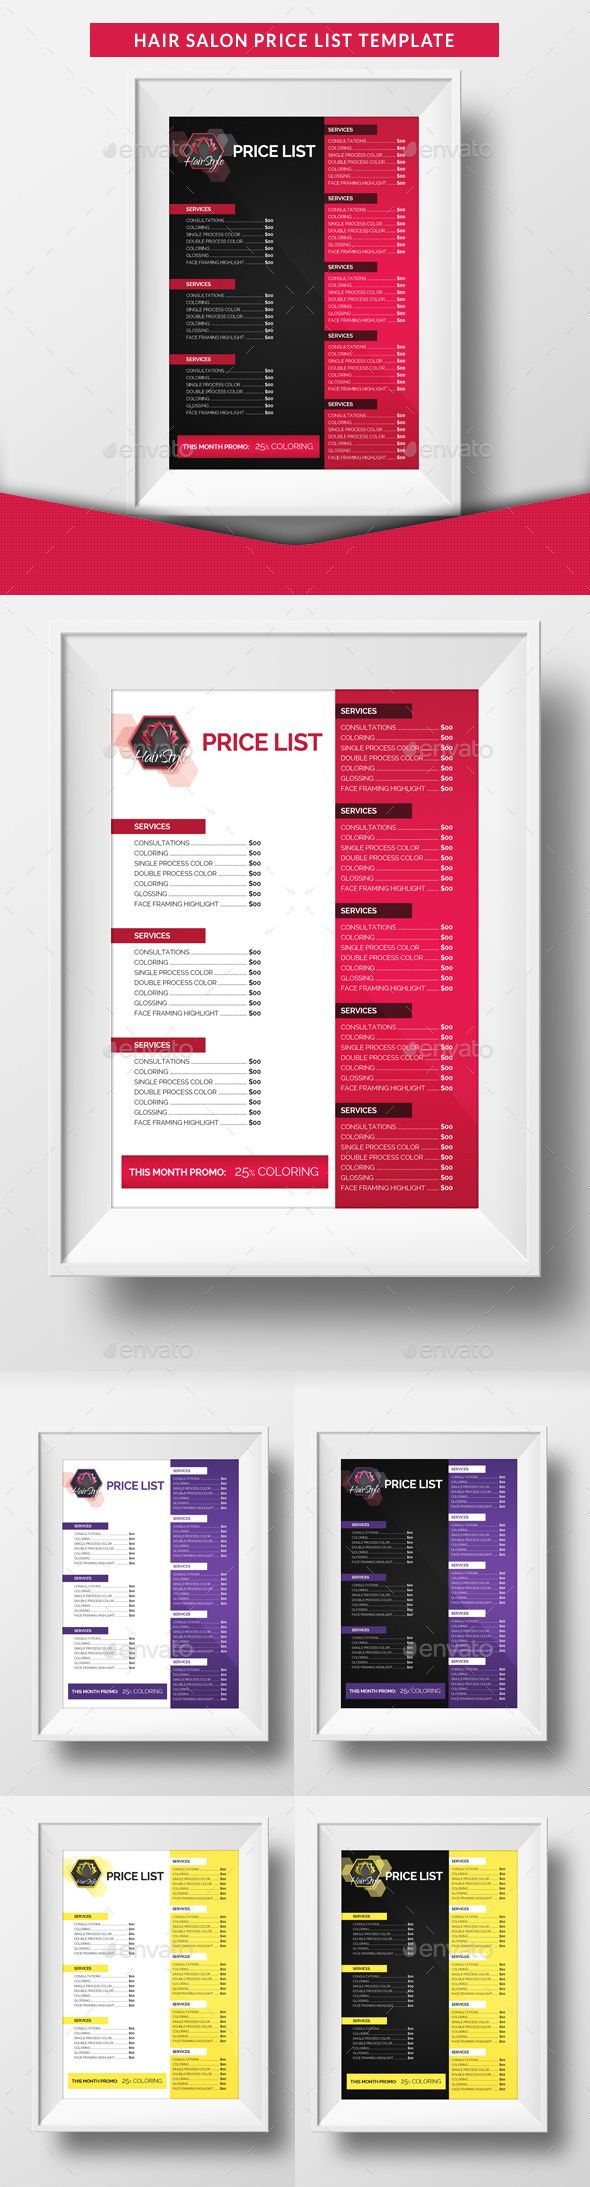 Pin by Bashooka Web   Graphic Design on Random Design Template     Price Sheet Template Printable Price List Template For Excel  Price List  Template For Excel  8 Price List Templates To Make Any Kind Of Price List